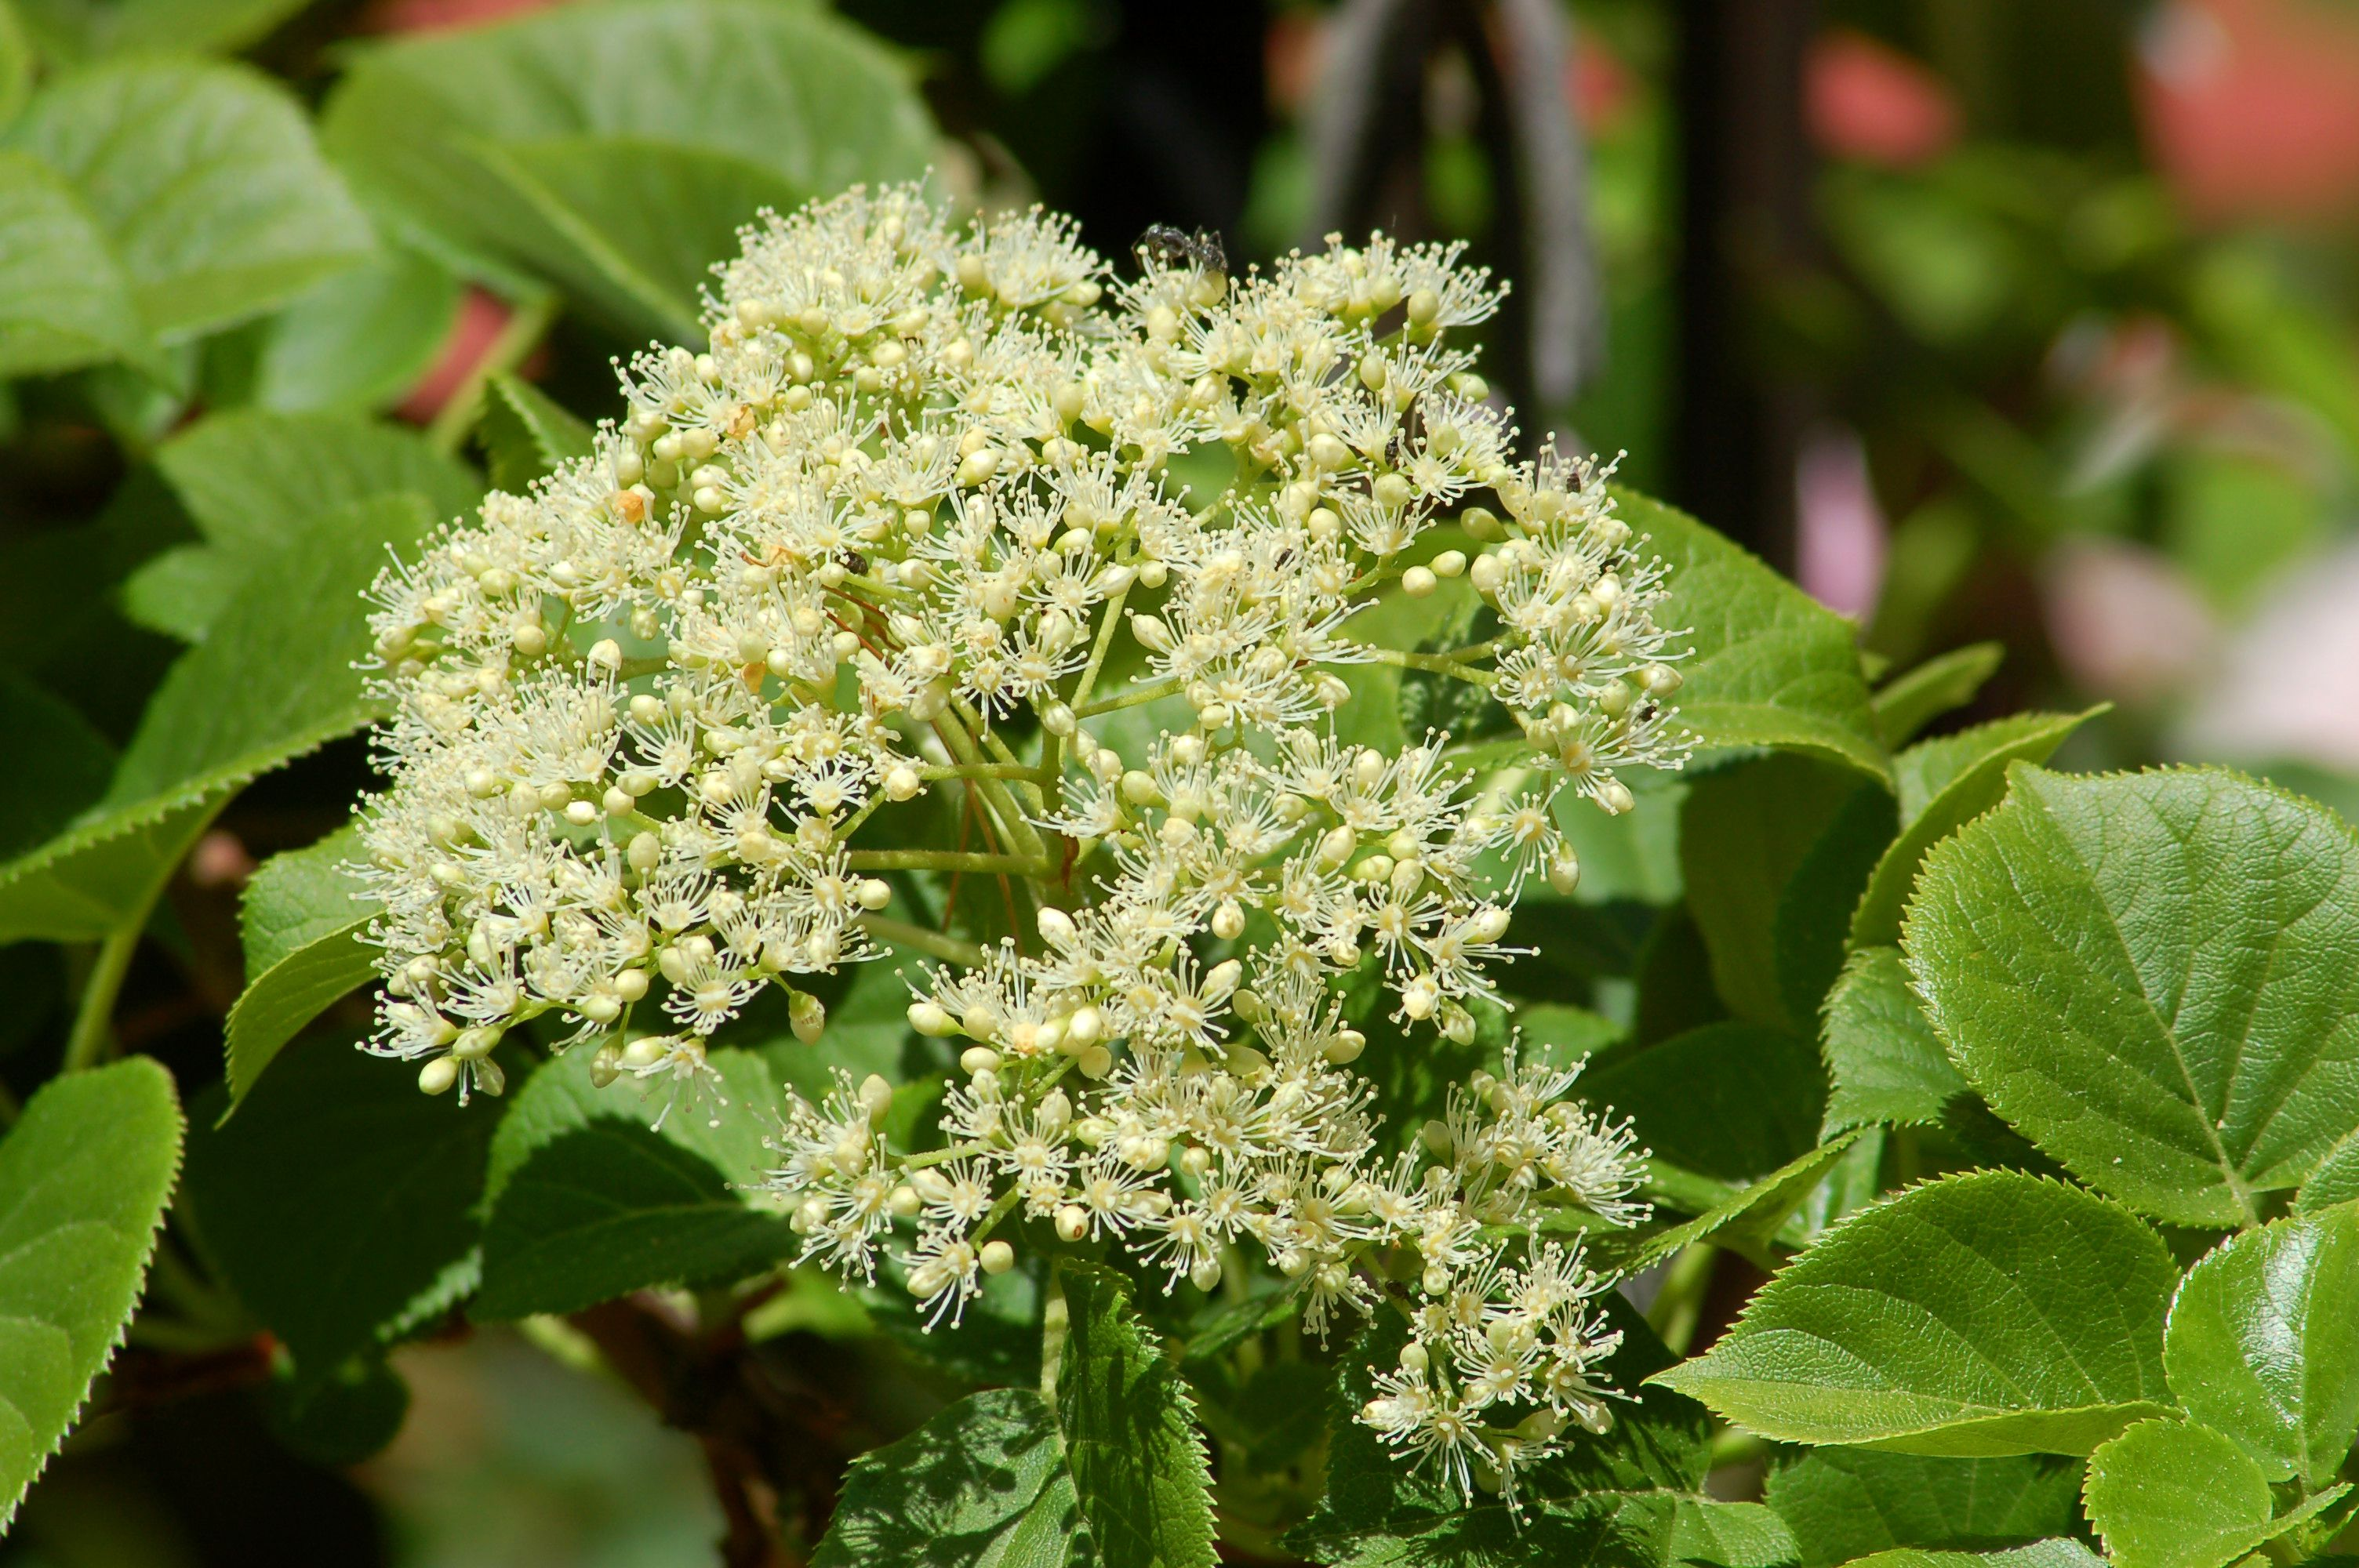 climbing-hydrangea-flowerhead-big-56a585b15f9b58b7d0dd42a0 House Grown From Plants on cut house, led house, flooded house, shot house, ground house, felt house, frozen house, roc house, a class house, read house,